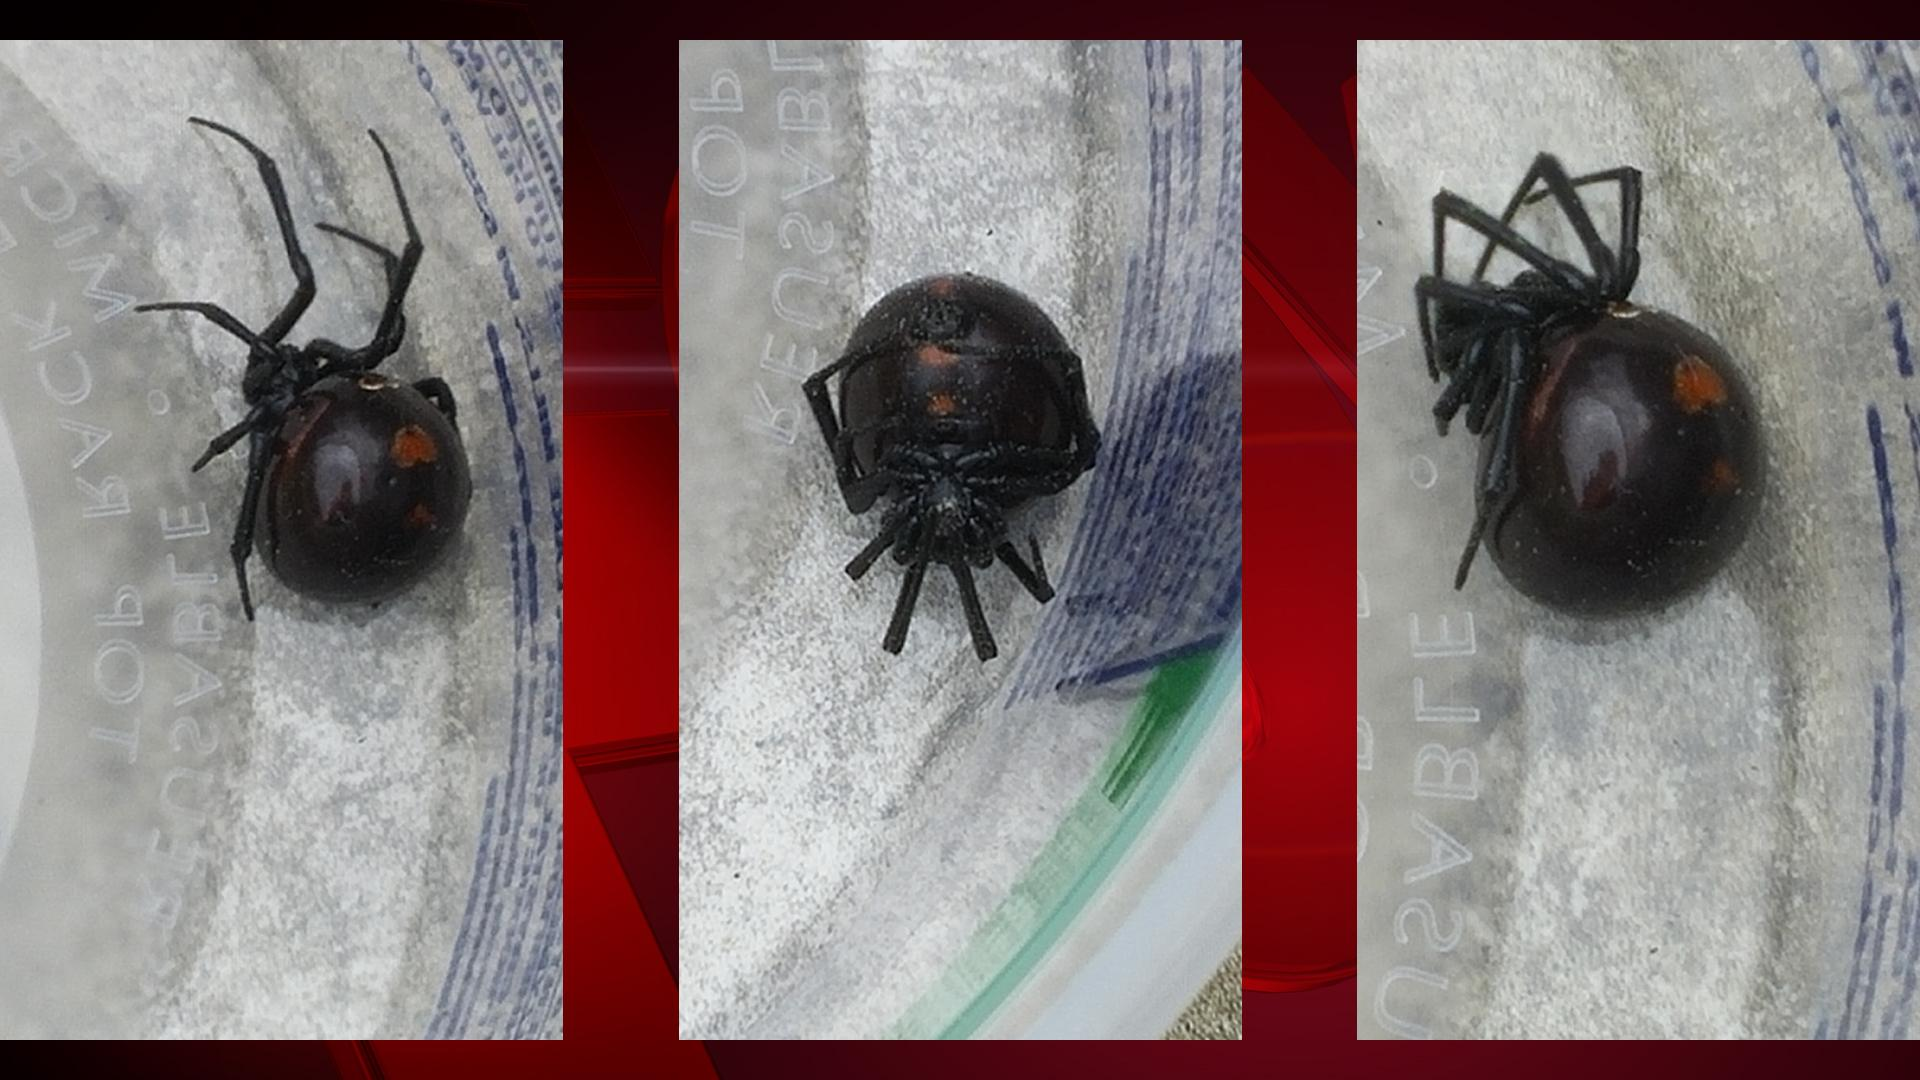 Shane Magle and his girlfriend, Stephanie Lardo, of New Franken, found a black widow spider on a red storage container outside their home, June 13, 2017. (Photos courtesy of Stephanie Lardo)